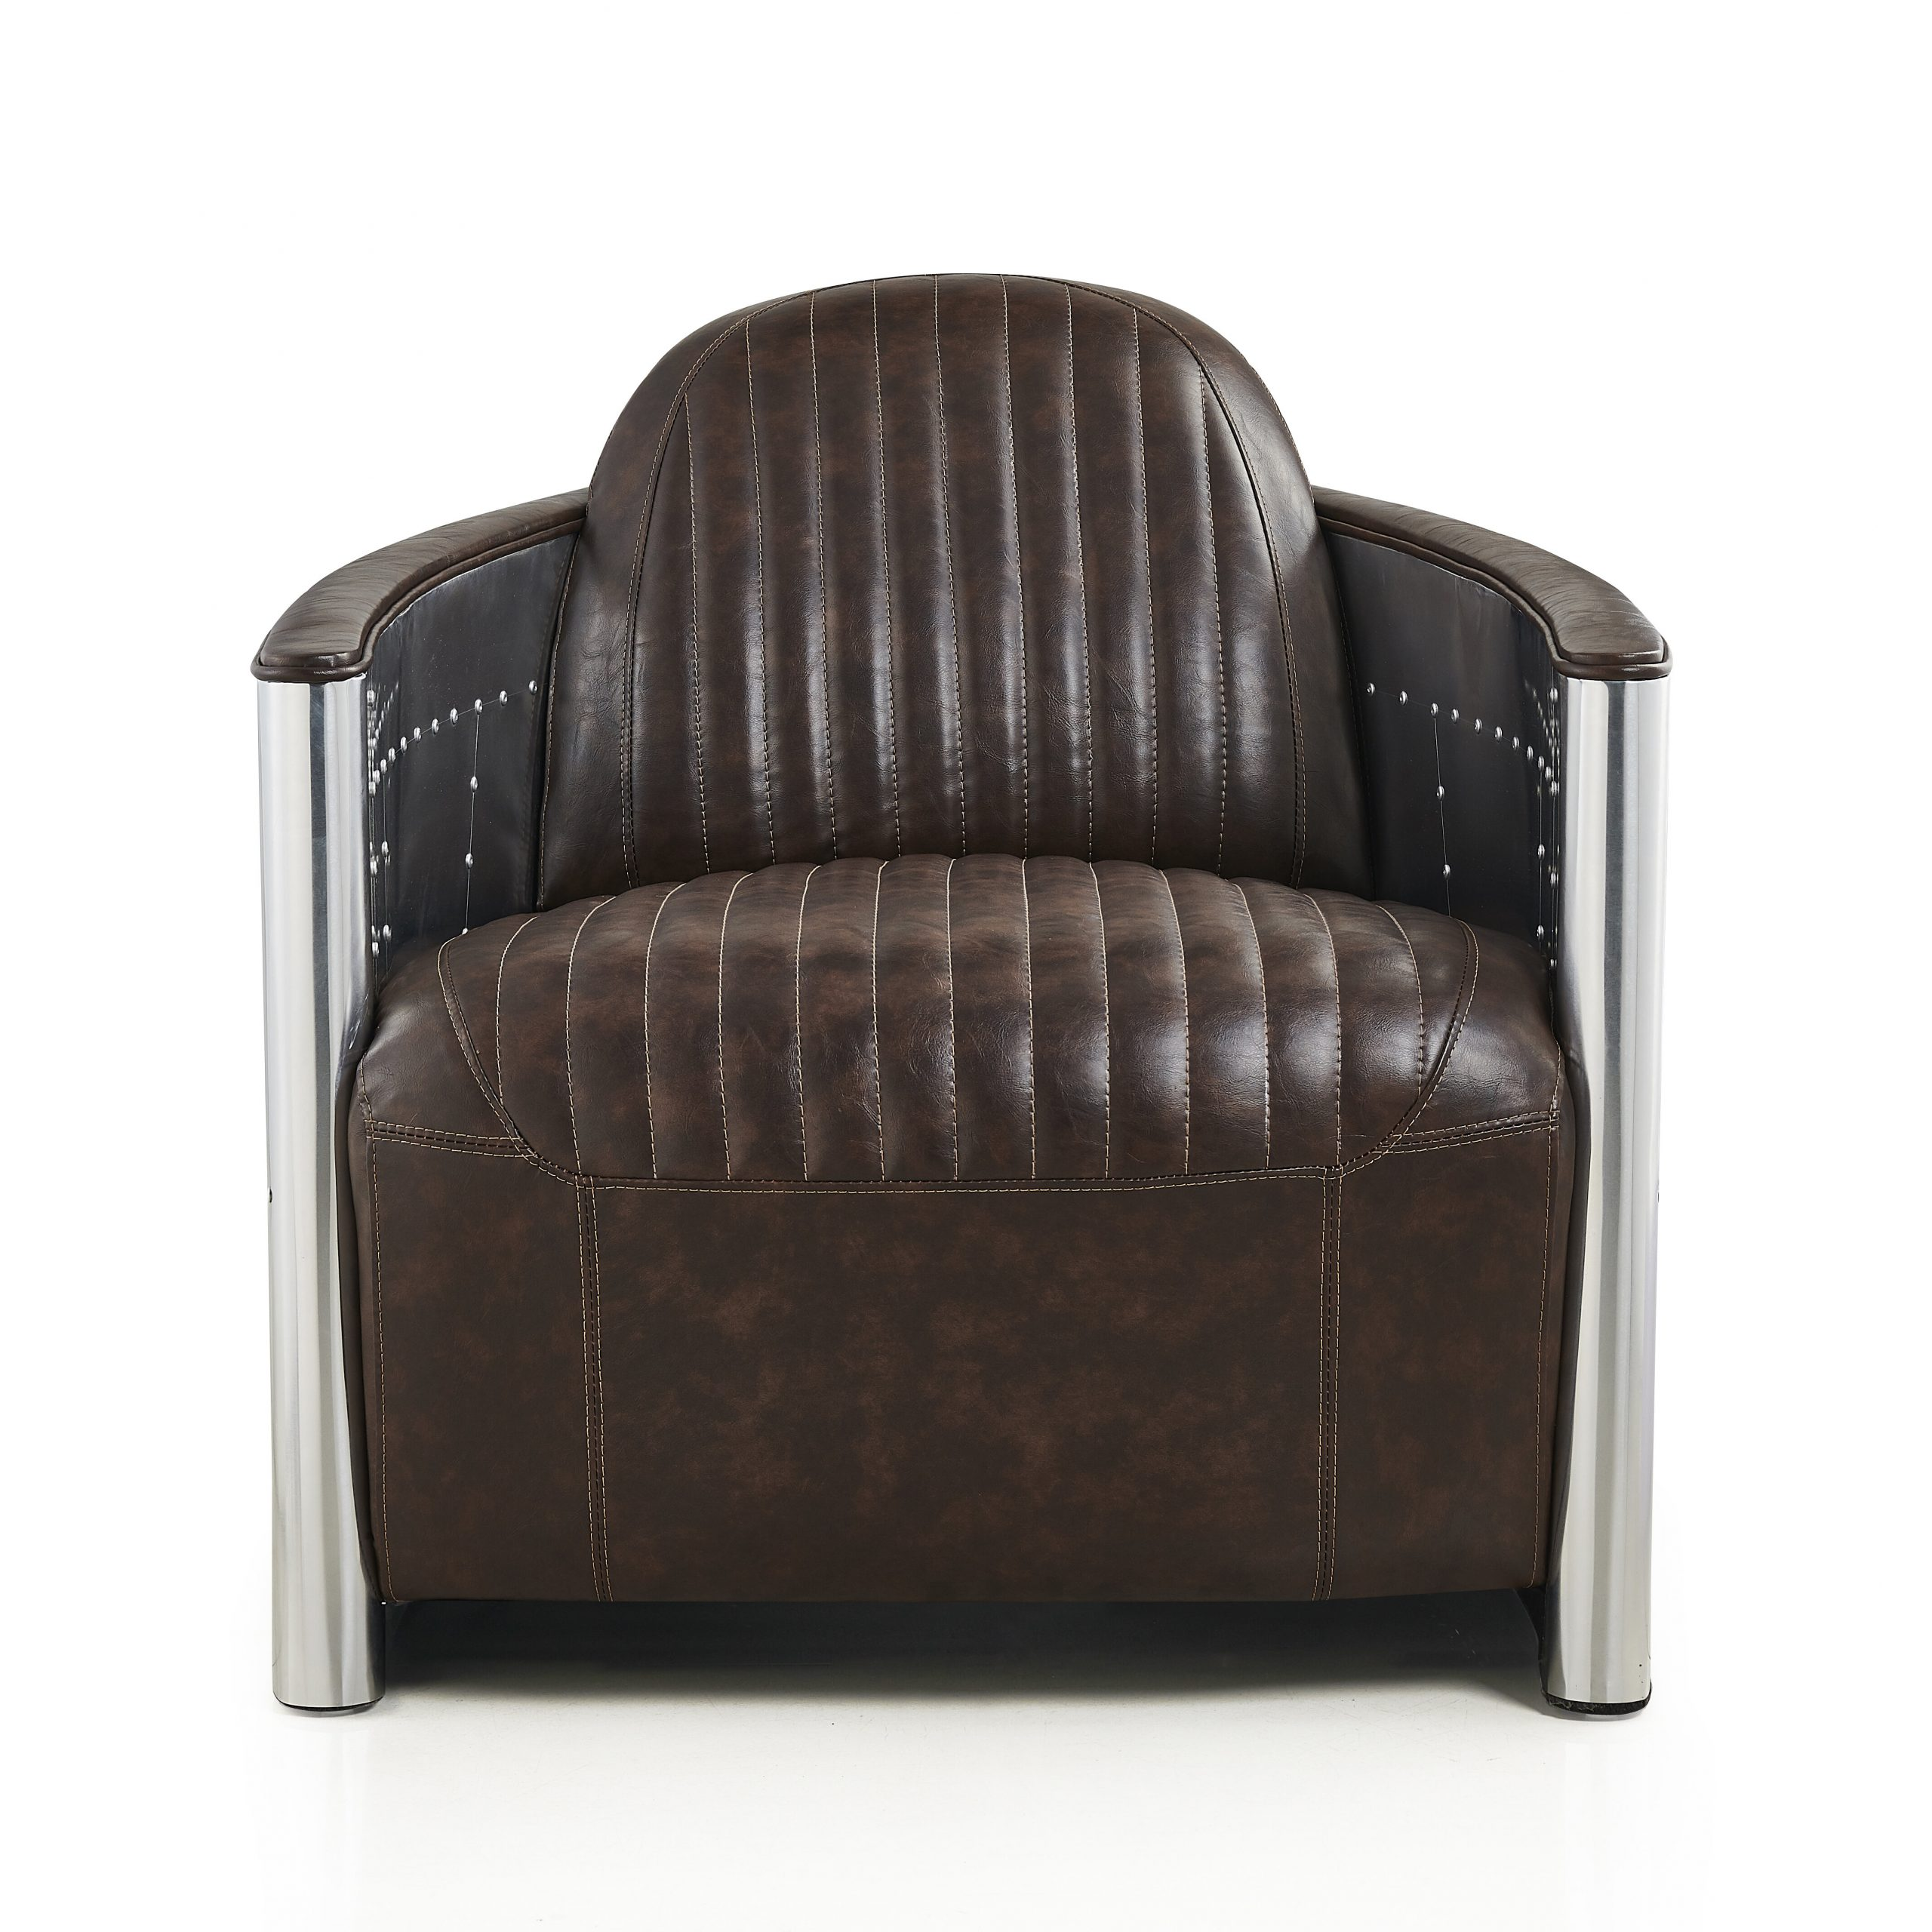 Barrel 17 Stories Accent Chairs You'Ll Love In 2021 | Wayfair In Hazley Faux Leather Swivel Barrel Chairs (View 5 of 15)